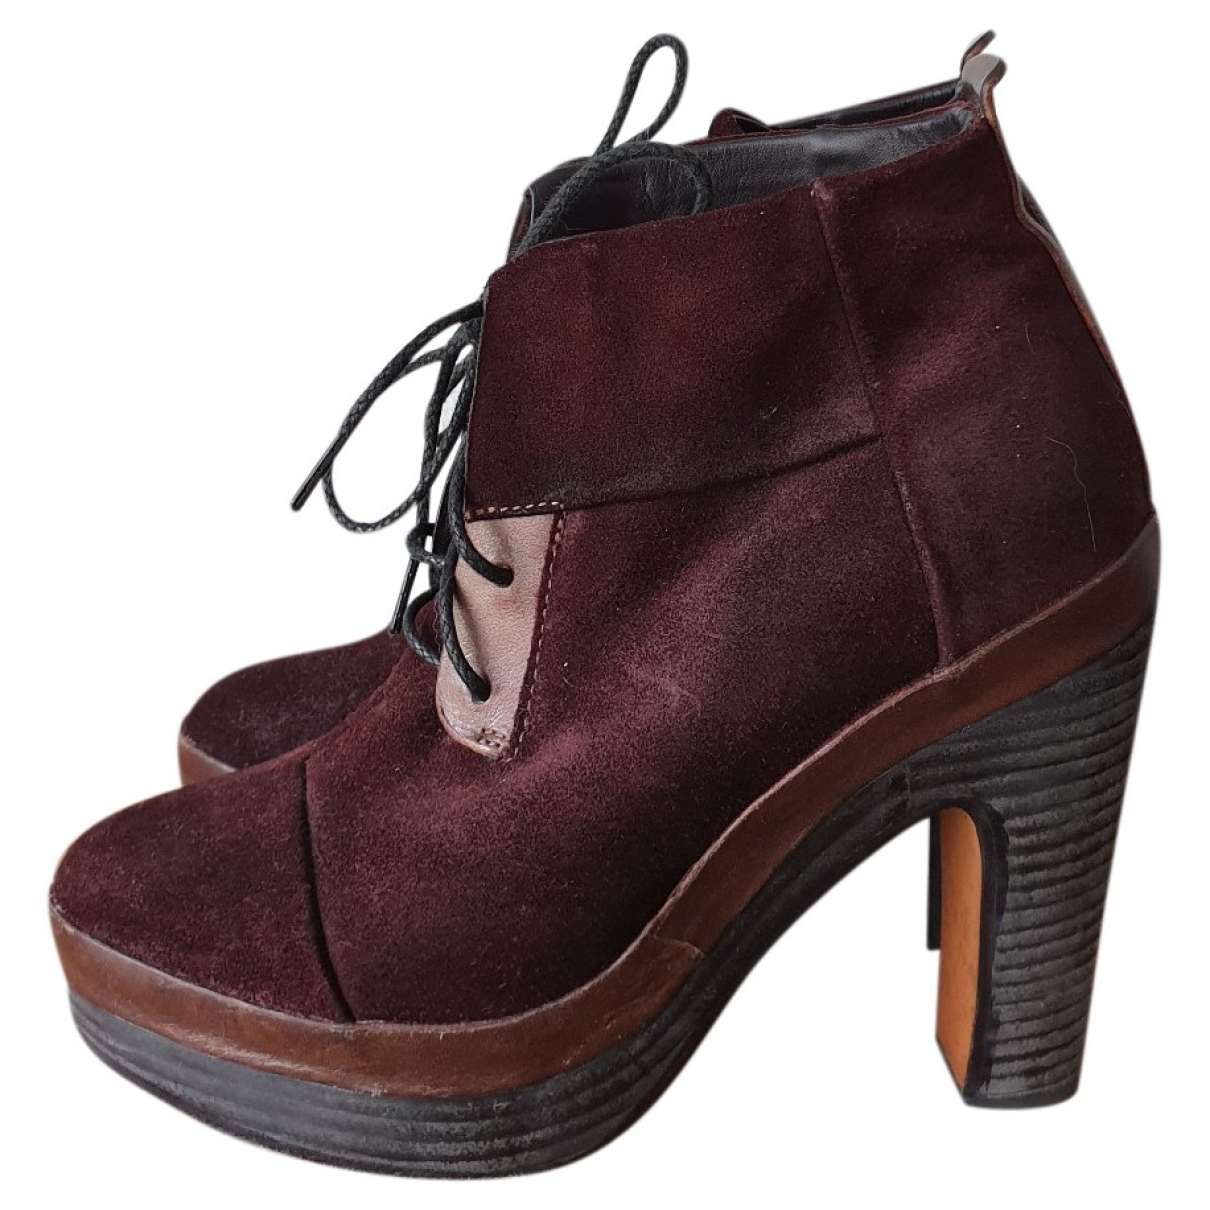 Rag & Bone \N Brown Leather Ankle boots for Women 37 EU